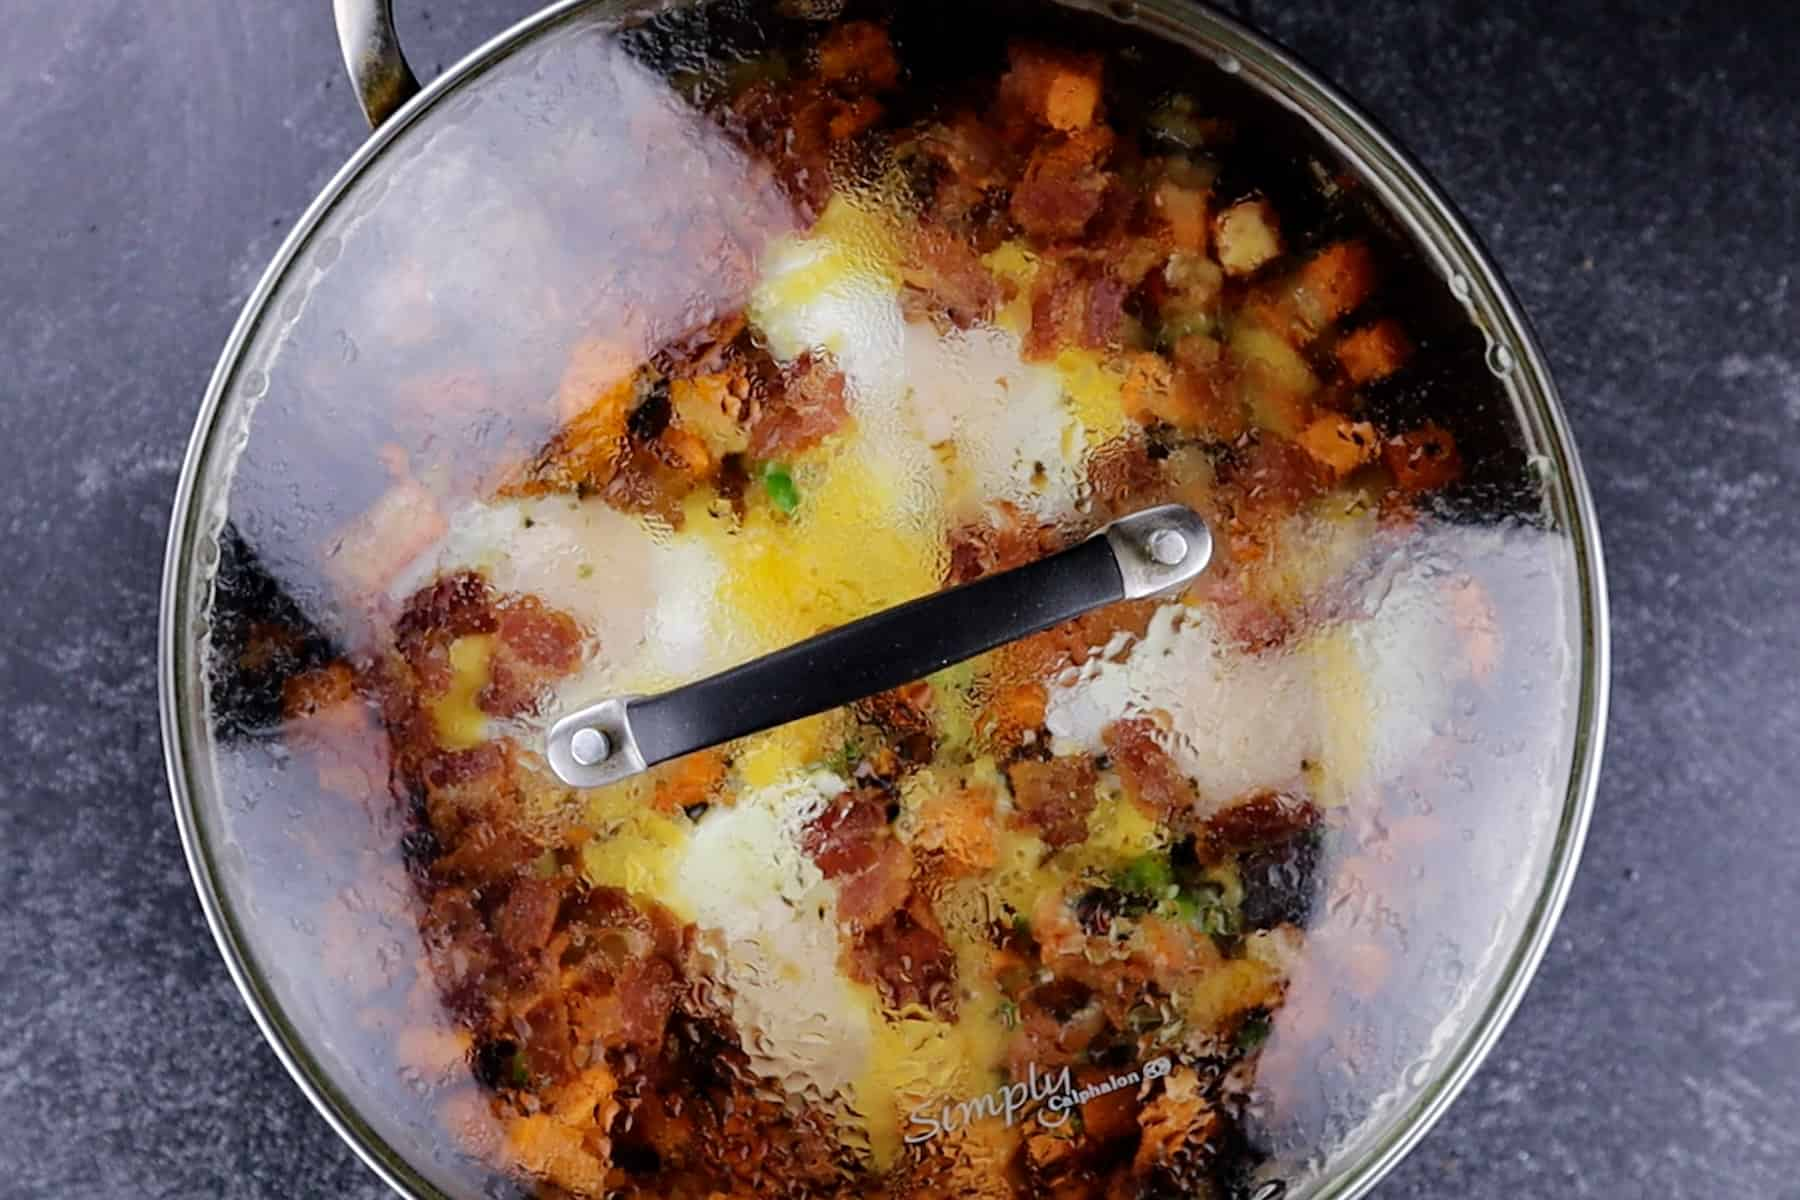 skillet with lid on it